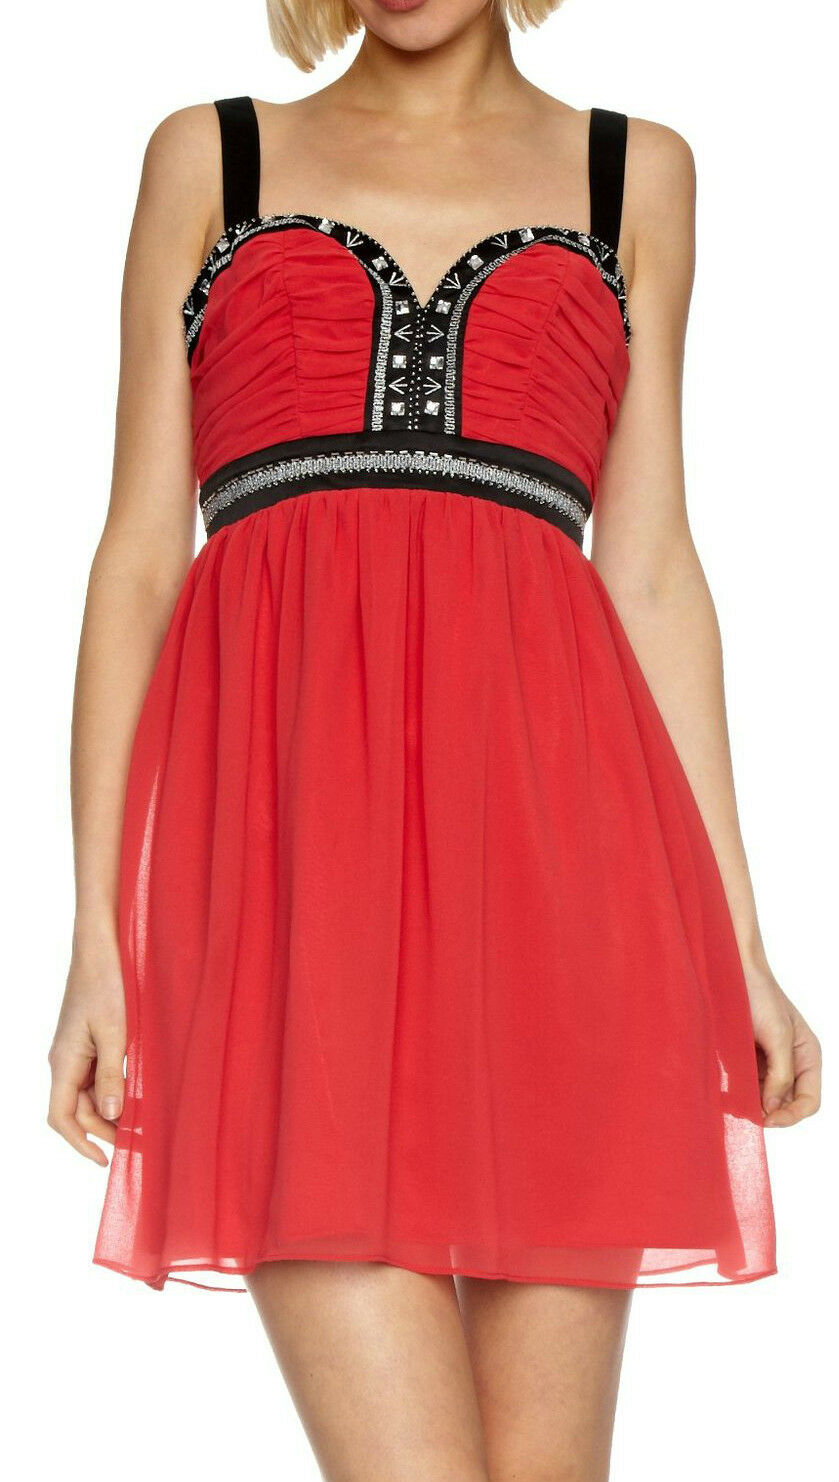 Lipsy Embroidered Embellished Babydoll Christmas Party Dress Cherish Red